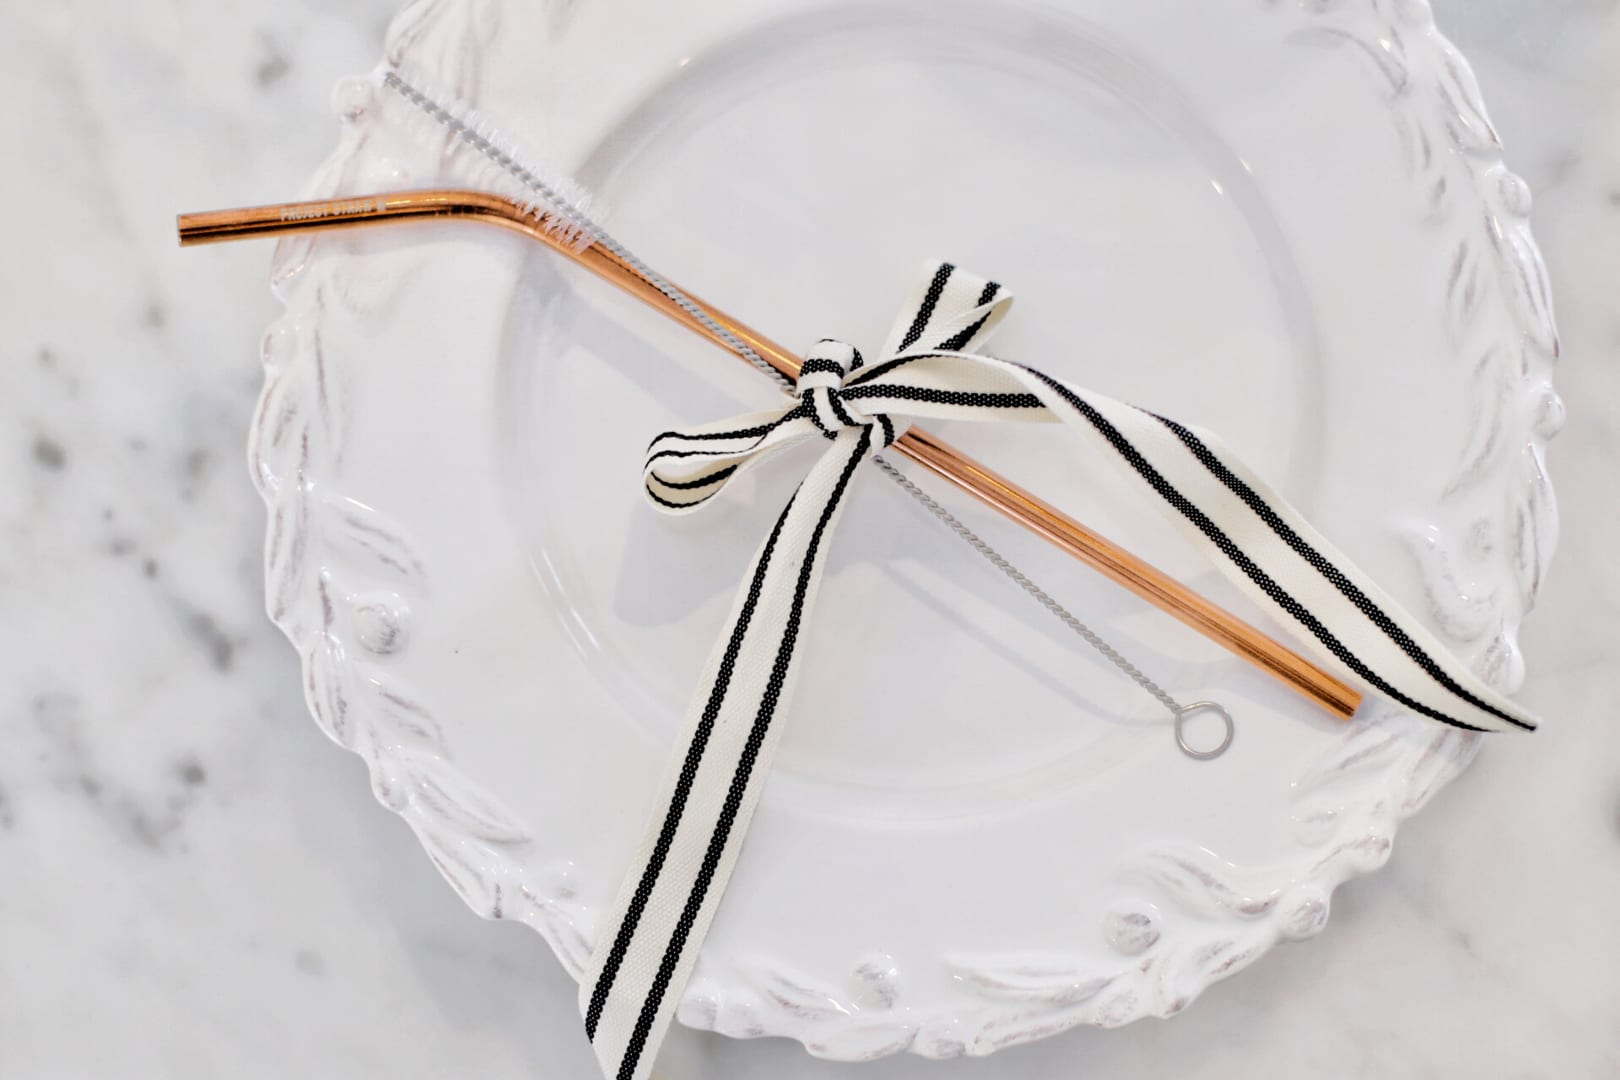 straw and brush tied with ribbon on plate